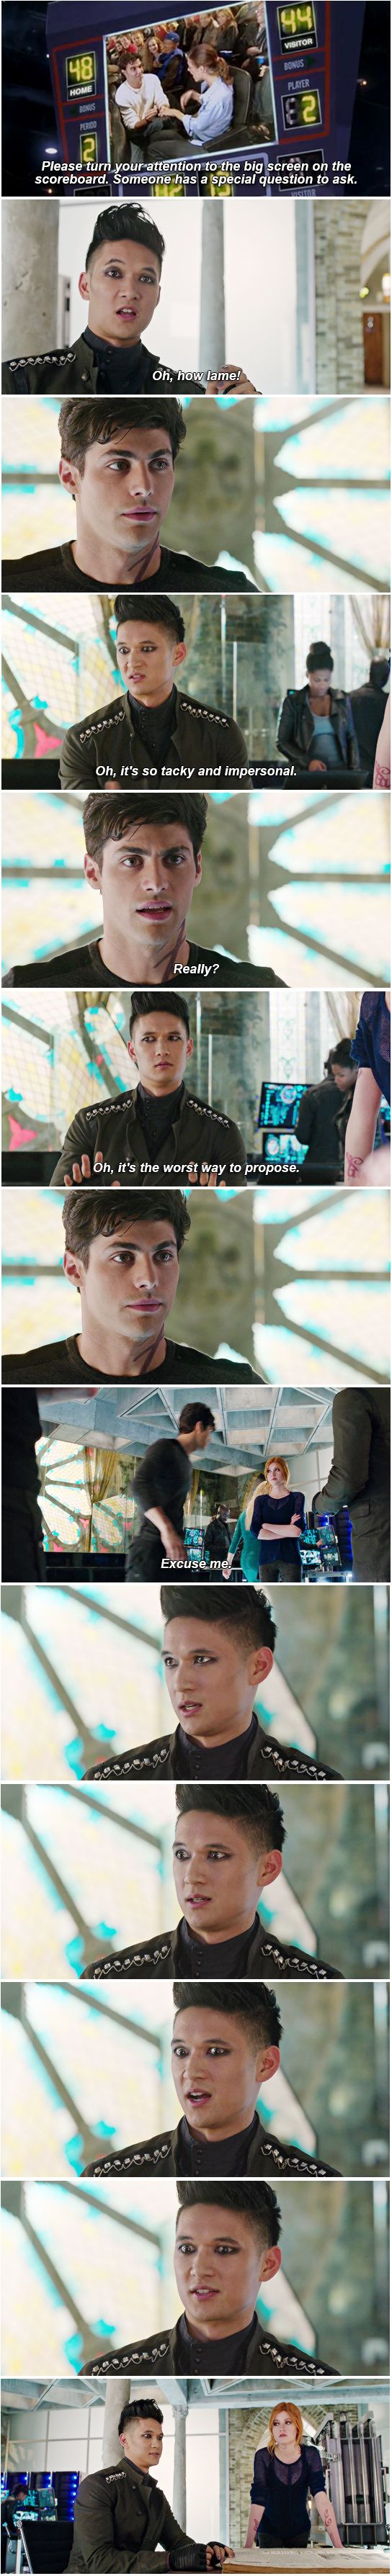 Marriage proposel fail ... (based on the tv serie Shadowhunters) ... the mortal instruments, clarissa 'clary' fray, alexander 'alec' lightwood, magnus bane, matthew daddario, harry shum jr, shadowhunters, katherine mcnamara